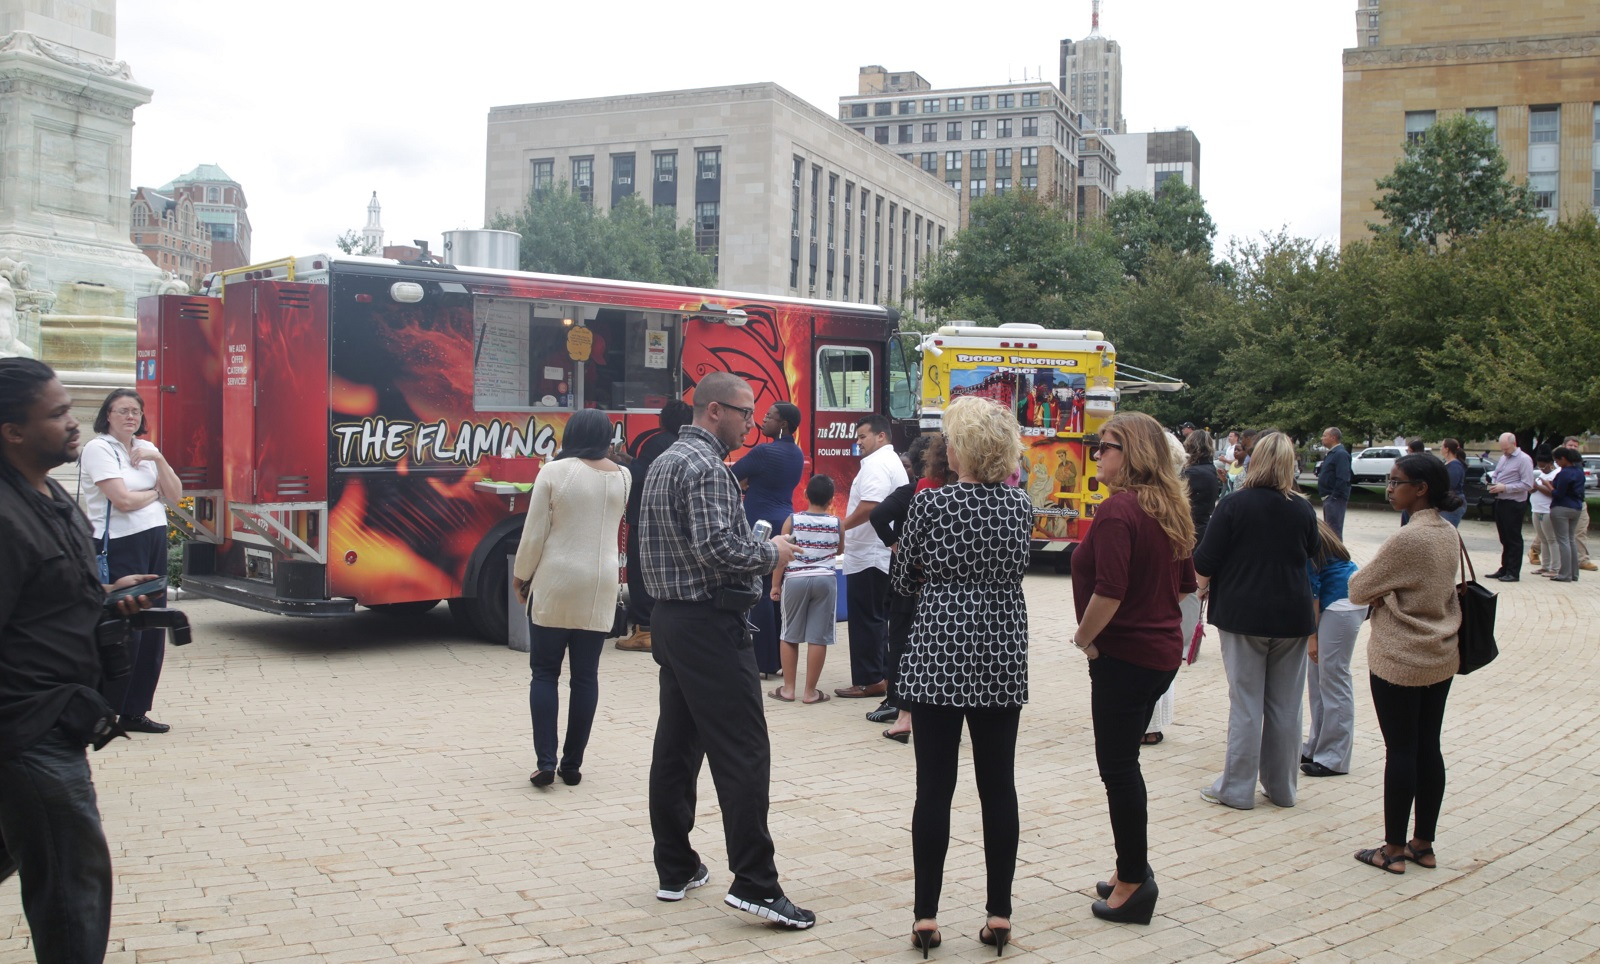 Customers line up for the Flaming Fish food truck at Niagara Square in 2015. (John Hickey/Buffalo News file photo)